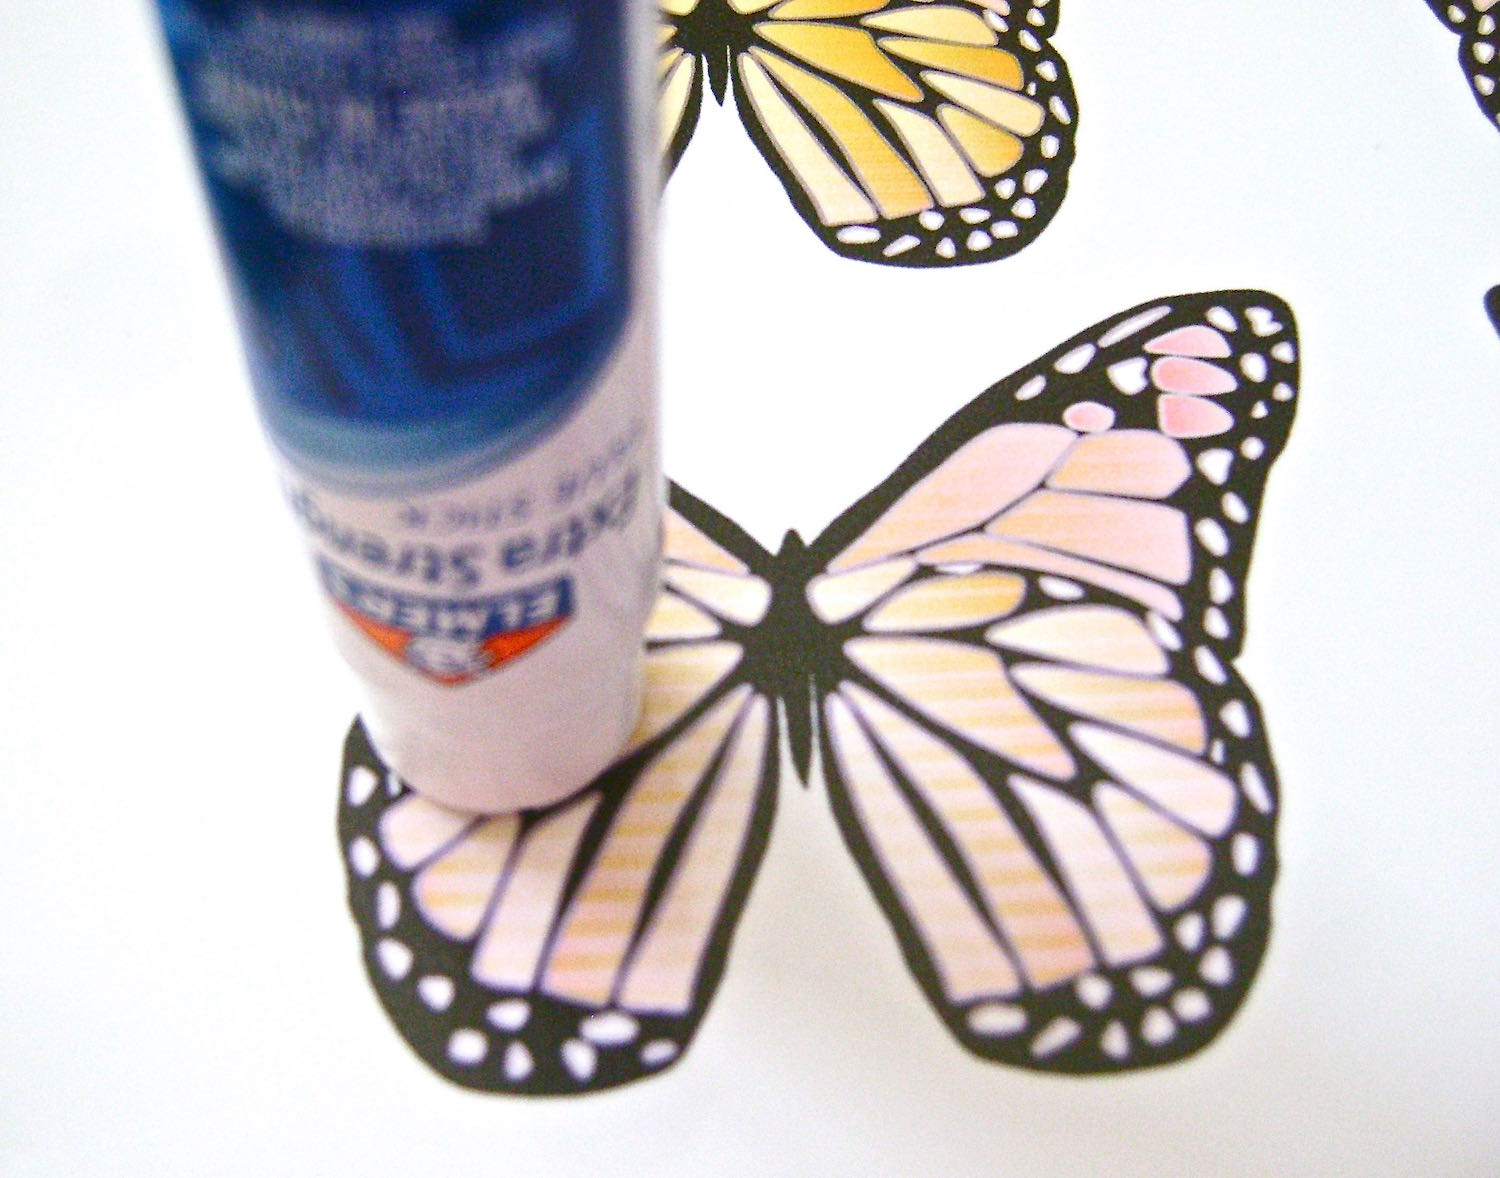 step 3 - Apply glue to the butterflies working on one at a time. Hold the glue stick flat against the printed image with light pressure. Work ina circular motion. Pressing down too hard on the glue stick will leave streaks of glue and lumps in what should be smooth wings.